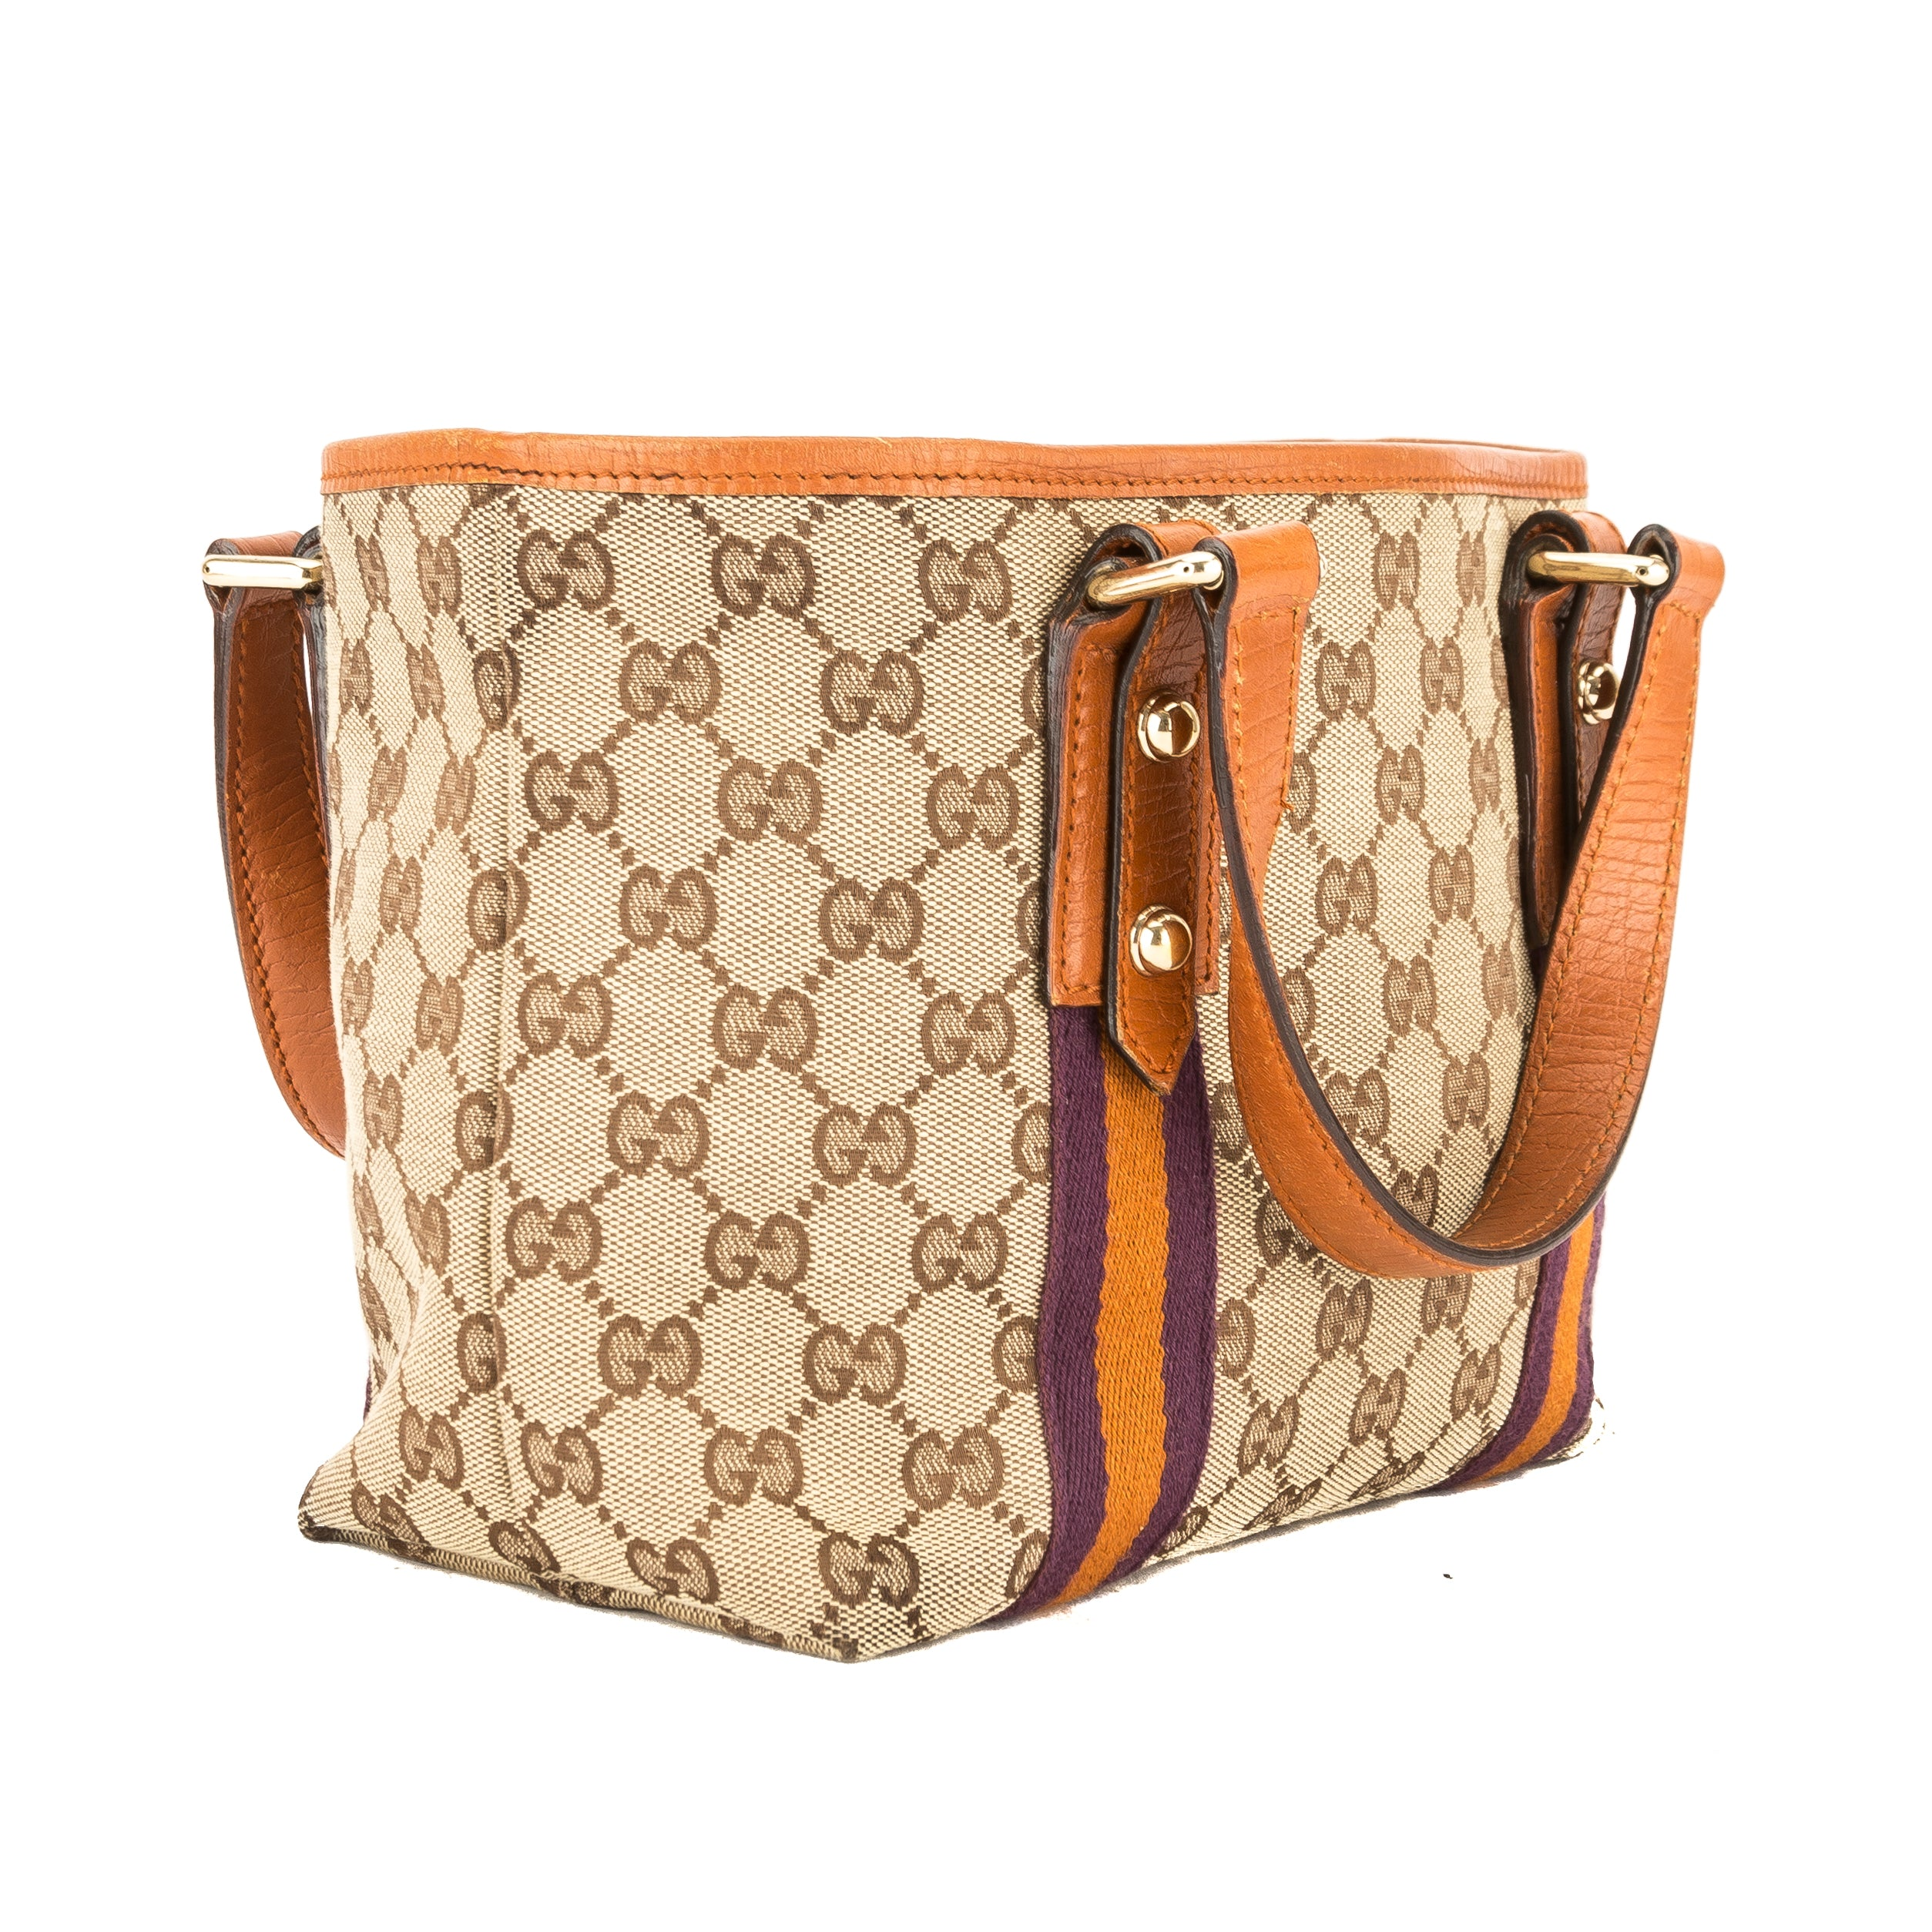 ec37e688d38 Gucci GG Monogram Canvas Small Jolicoeur Tote Bag (Pre Owned) - 3821011